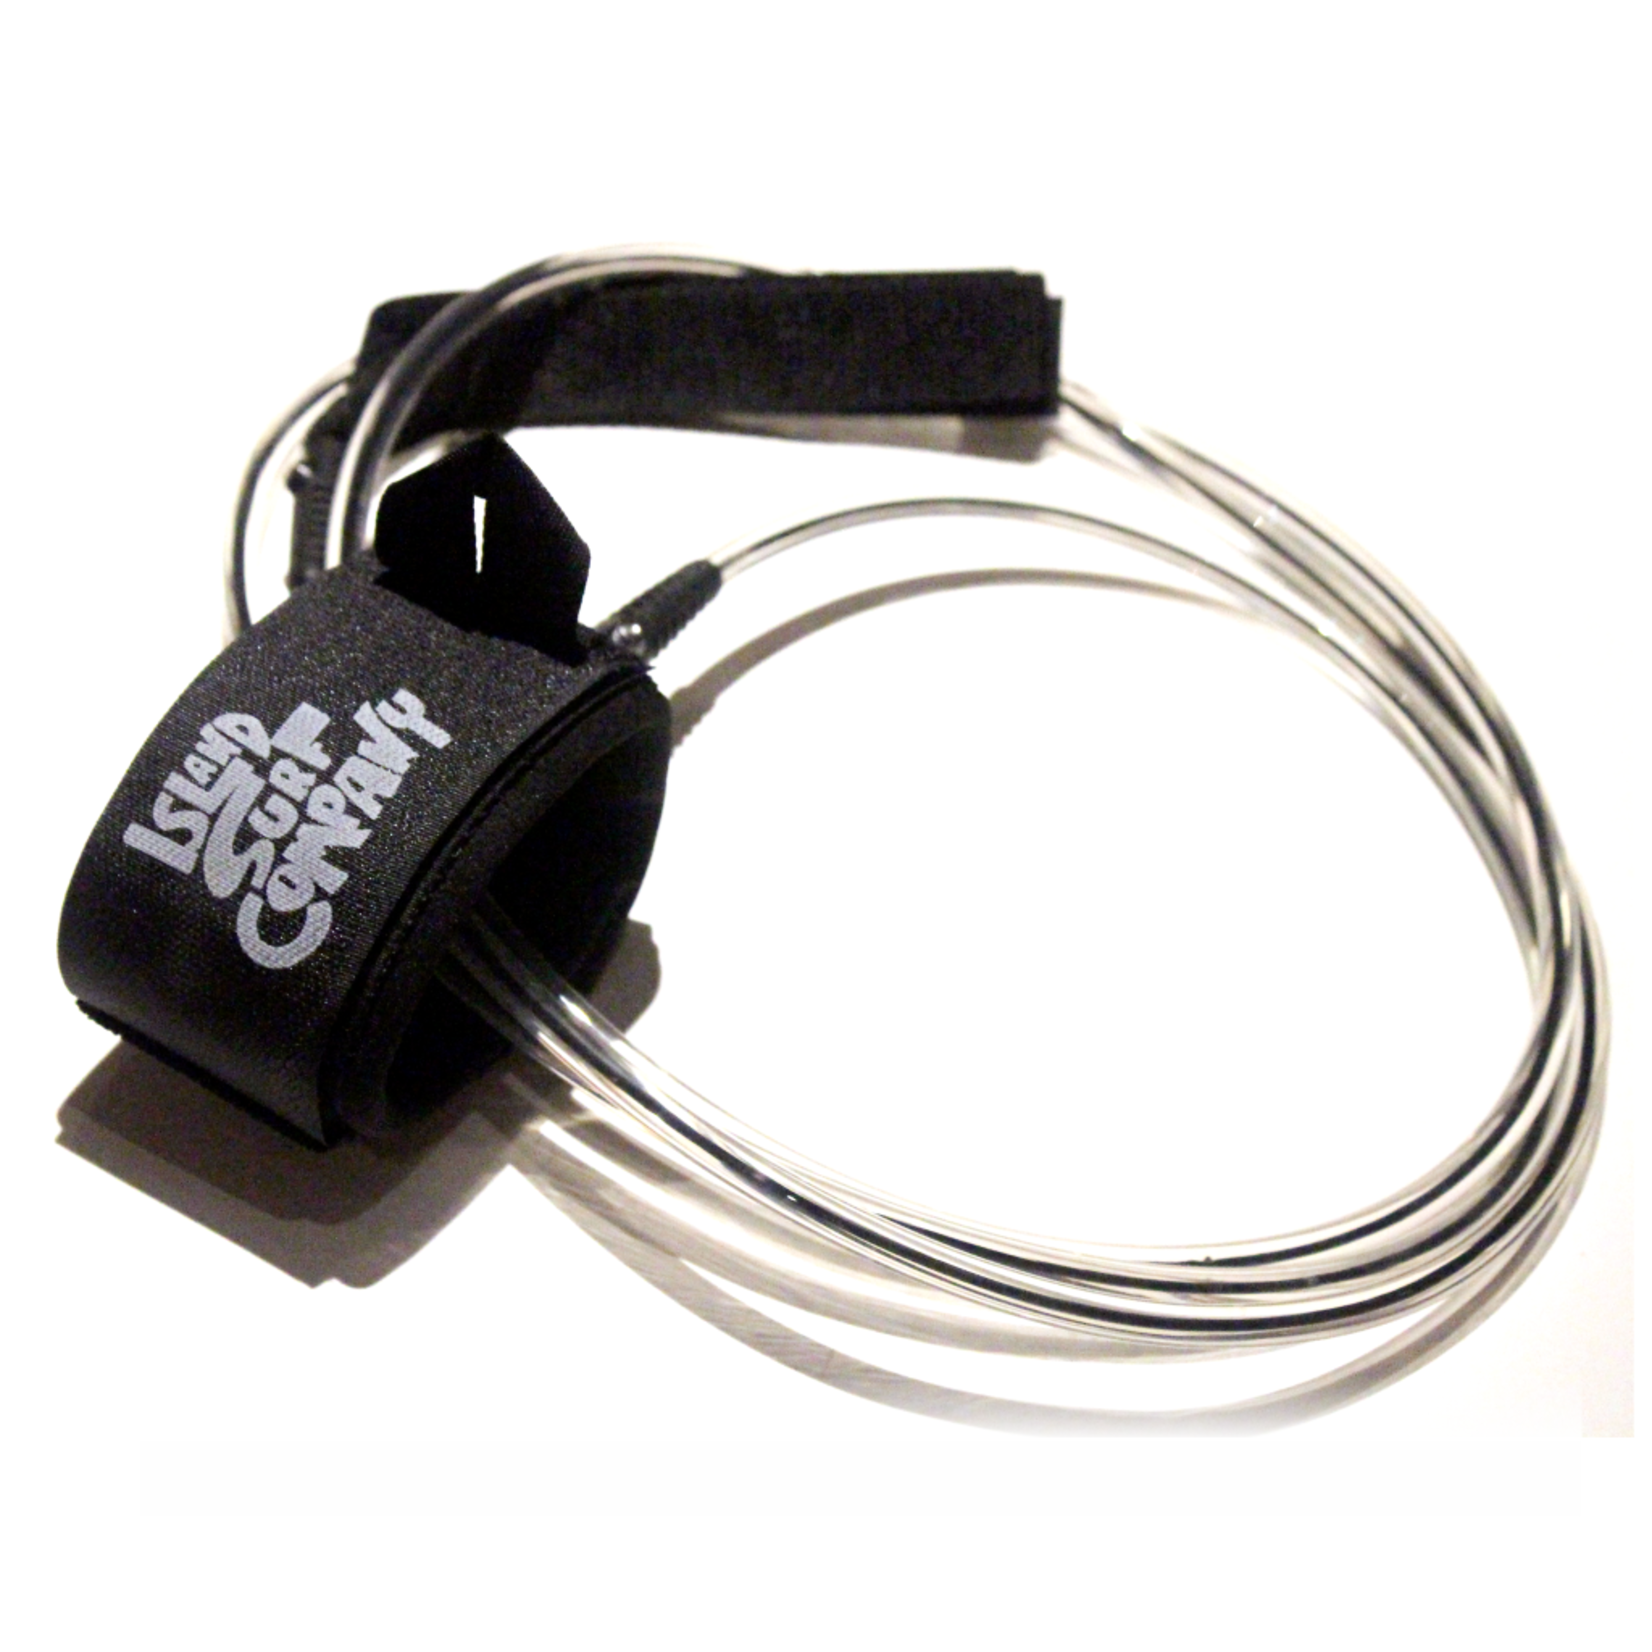 BLOCKSURF ISC Powerline Leash